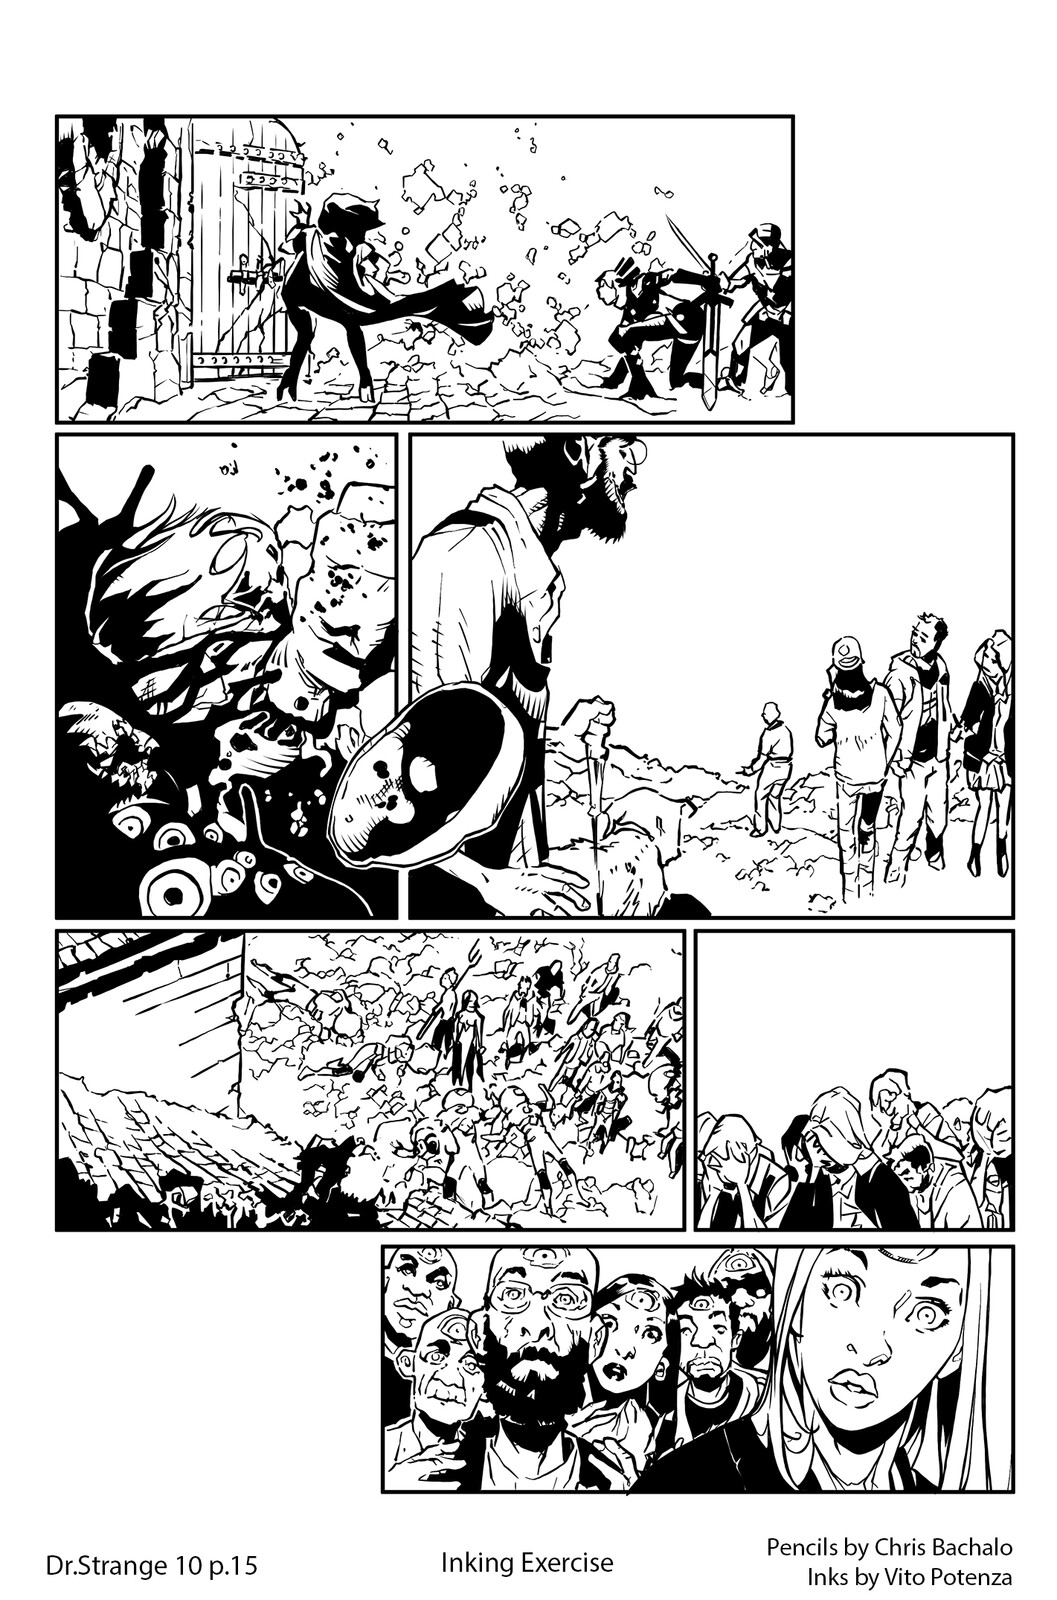 Dr.Strange #10 - page 15 Pencils by Chris Bachalo | Inking by me